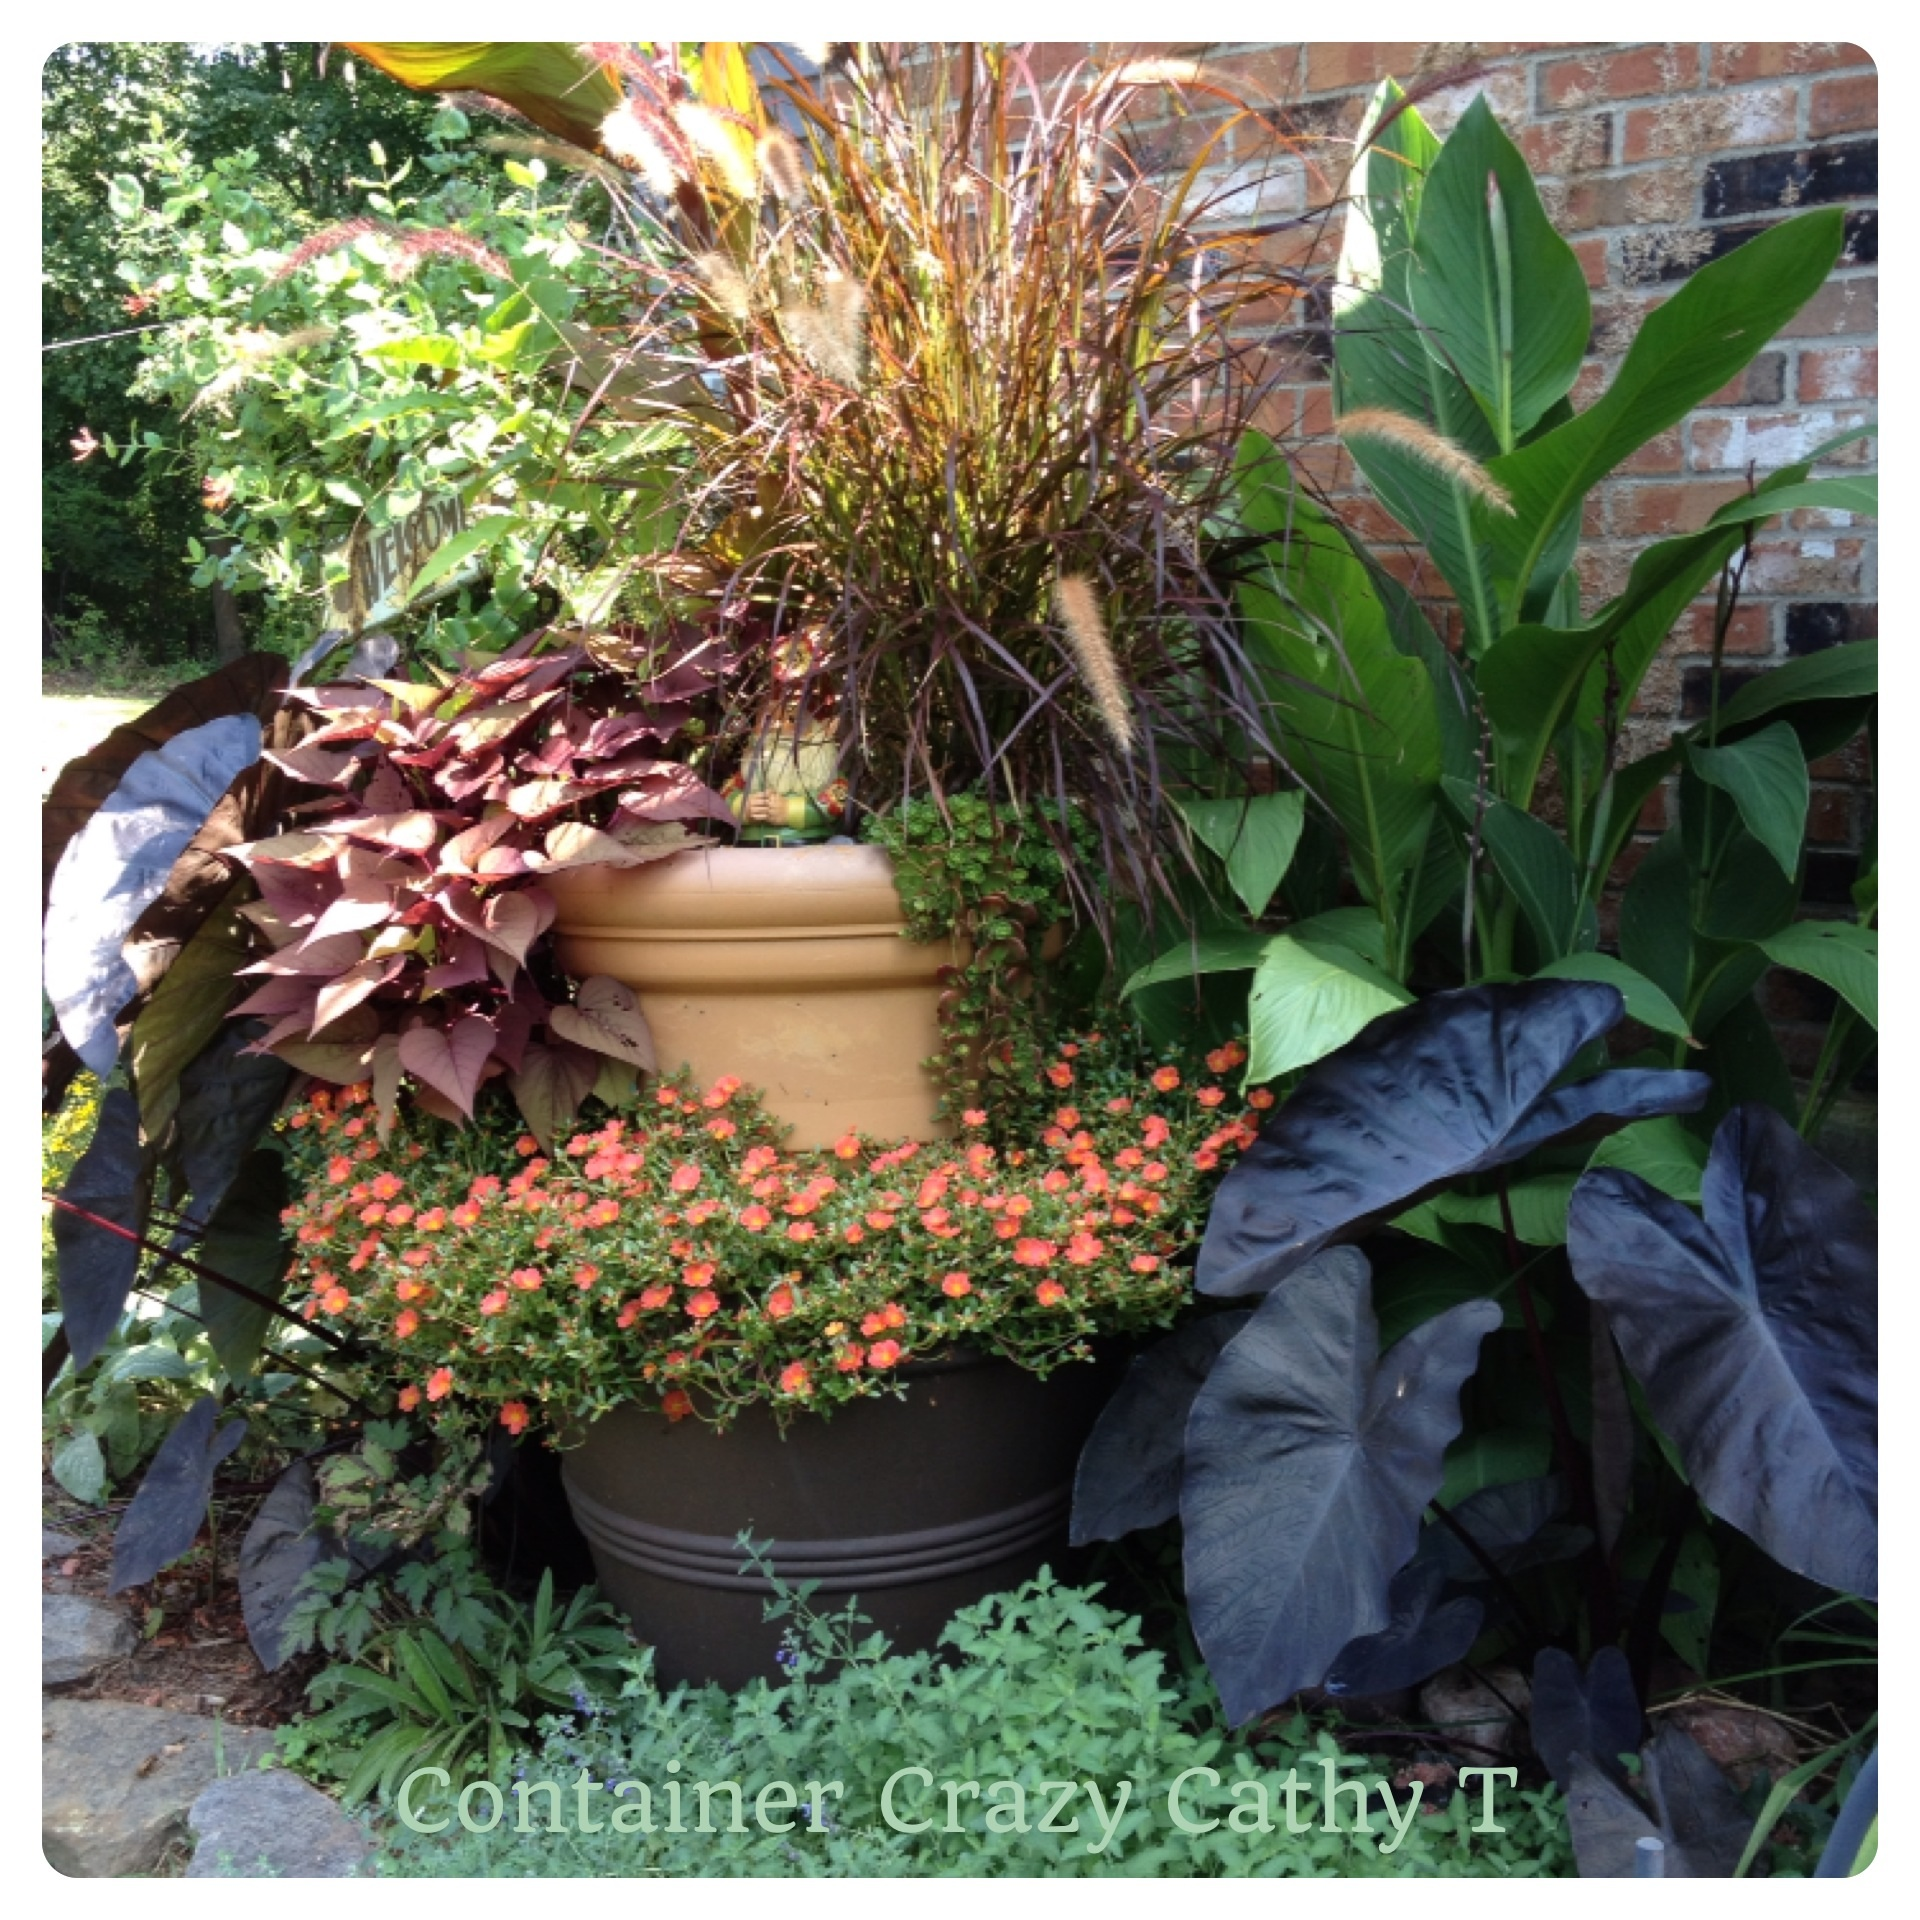 Elephant ears container crazy ct for Planting a garden